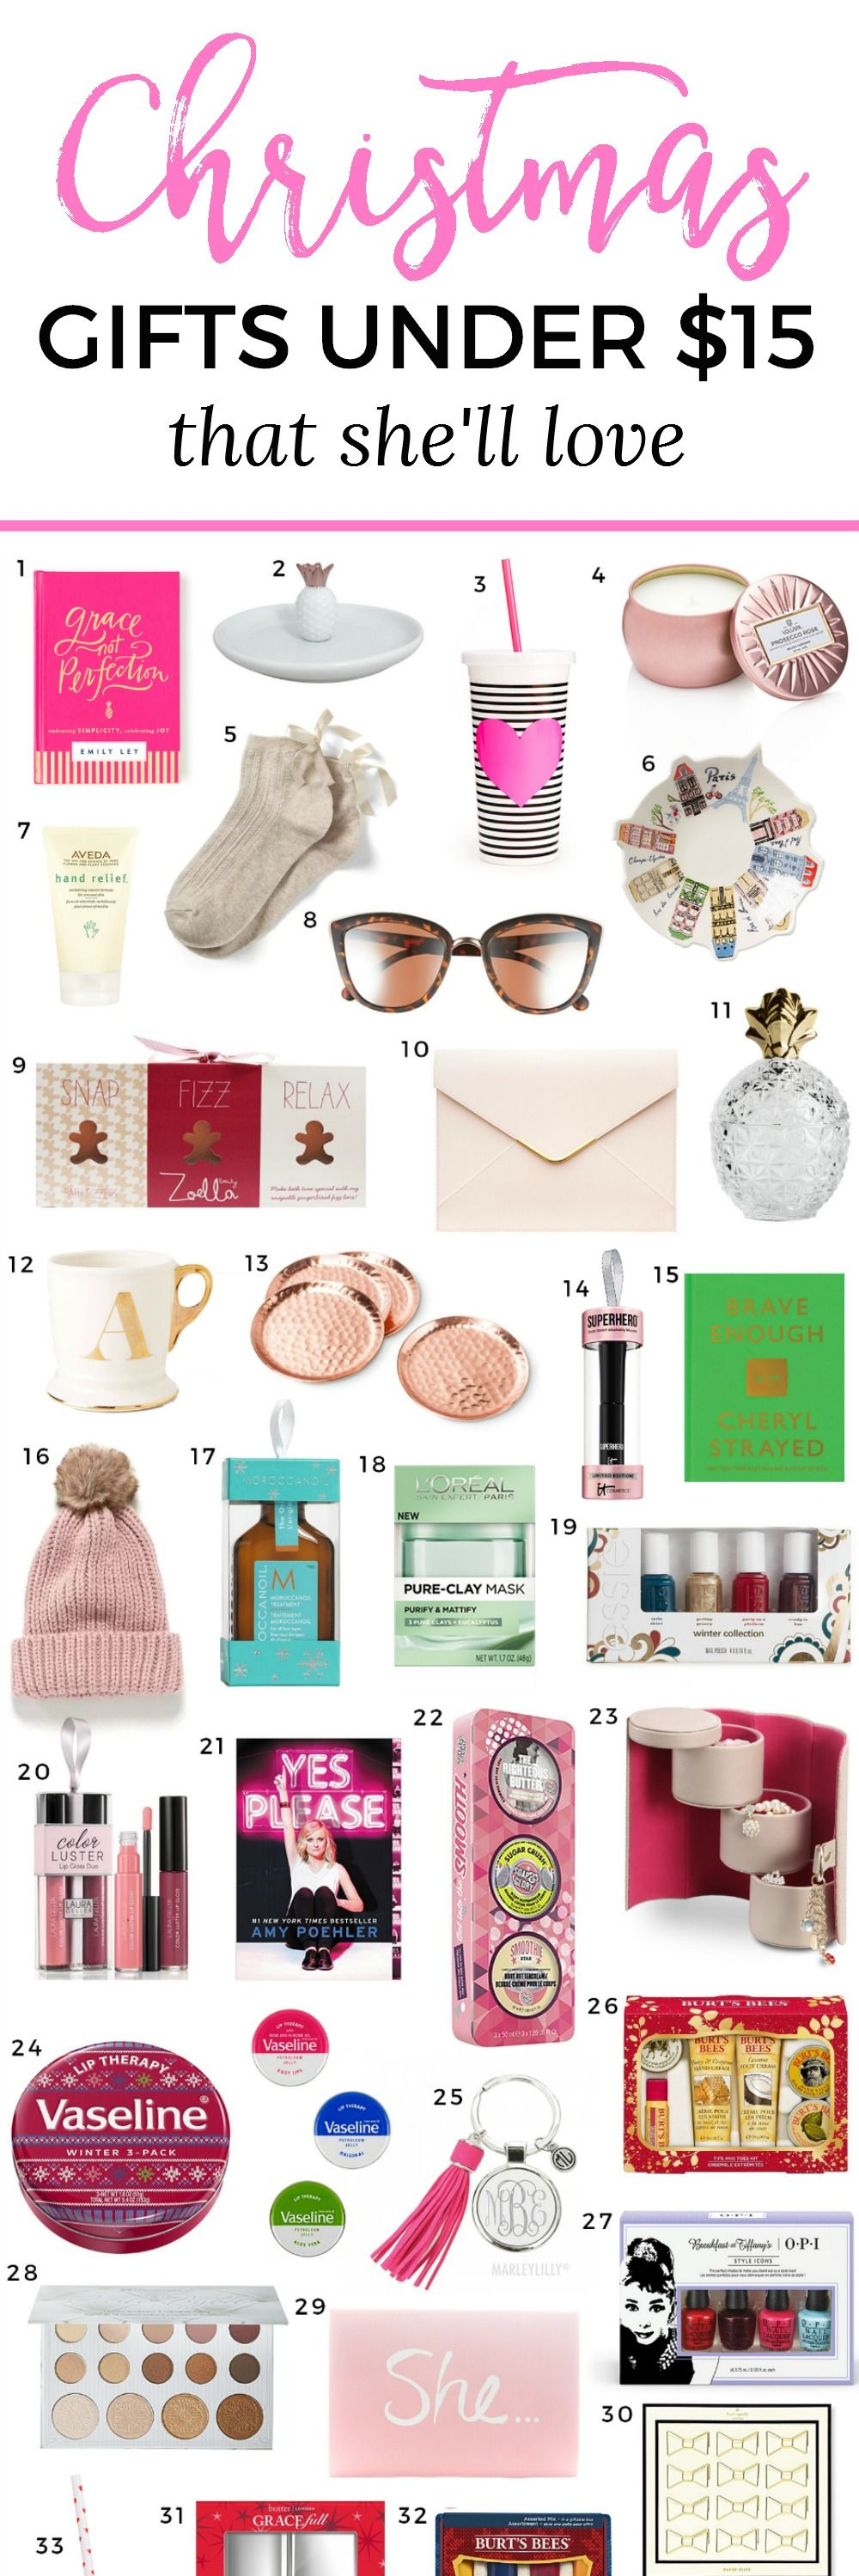 the best christmas gift ideas for women under 15 you wont want to miss this adorable christmas gift guide for women created by florida beauty and fashion - Best Christmas Gifts For Women